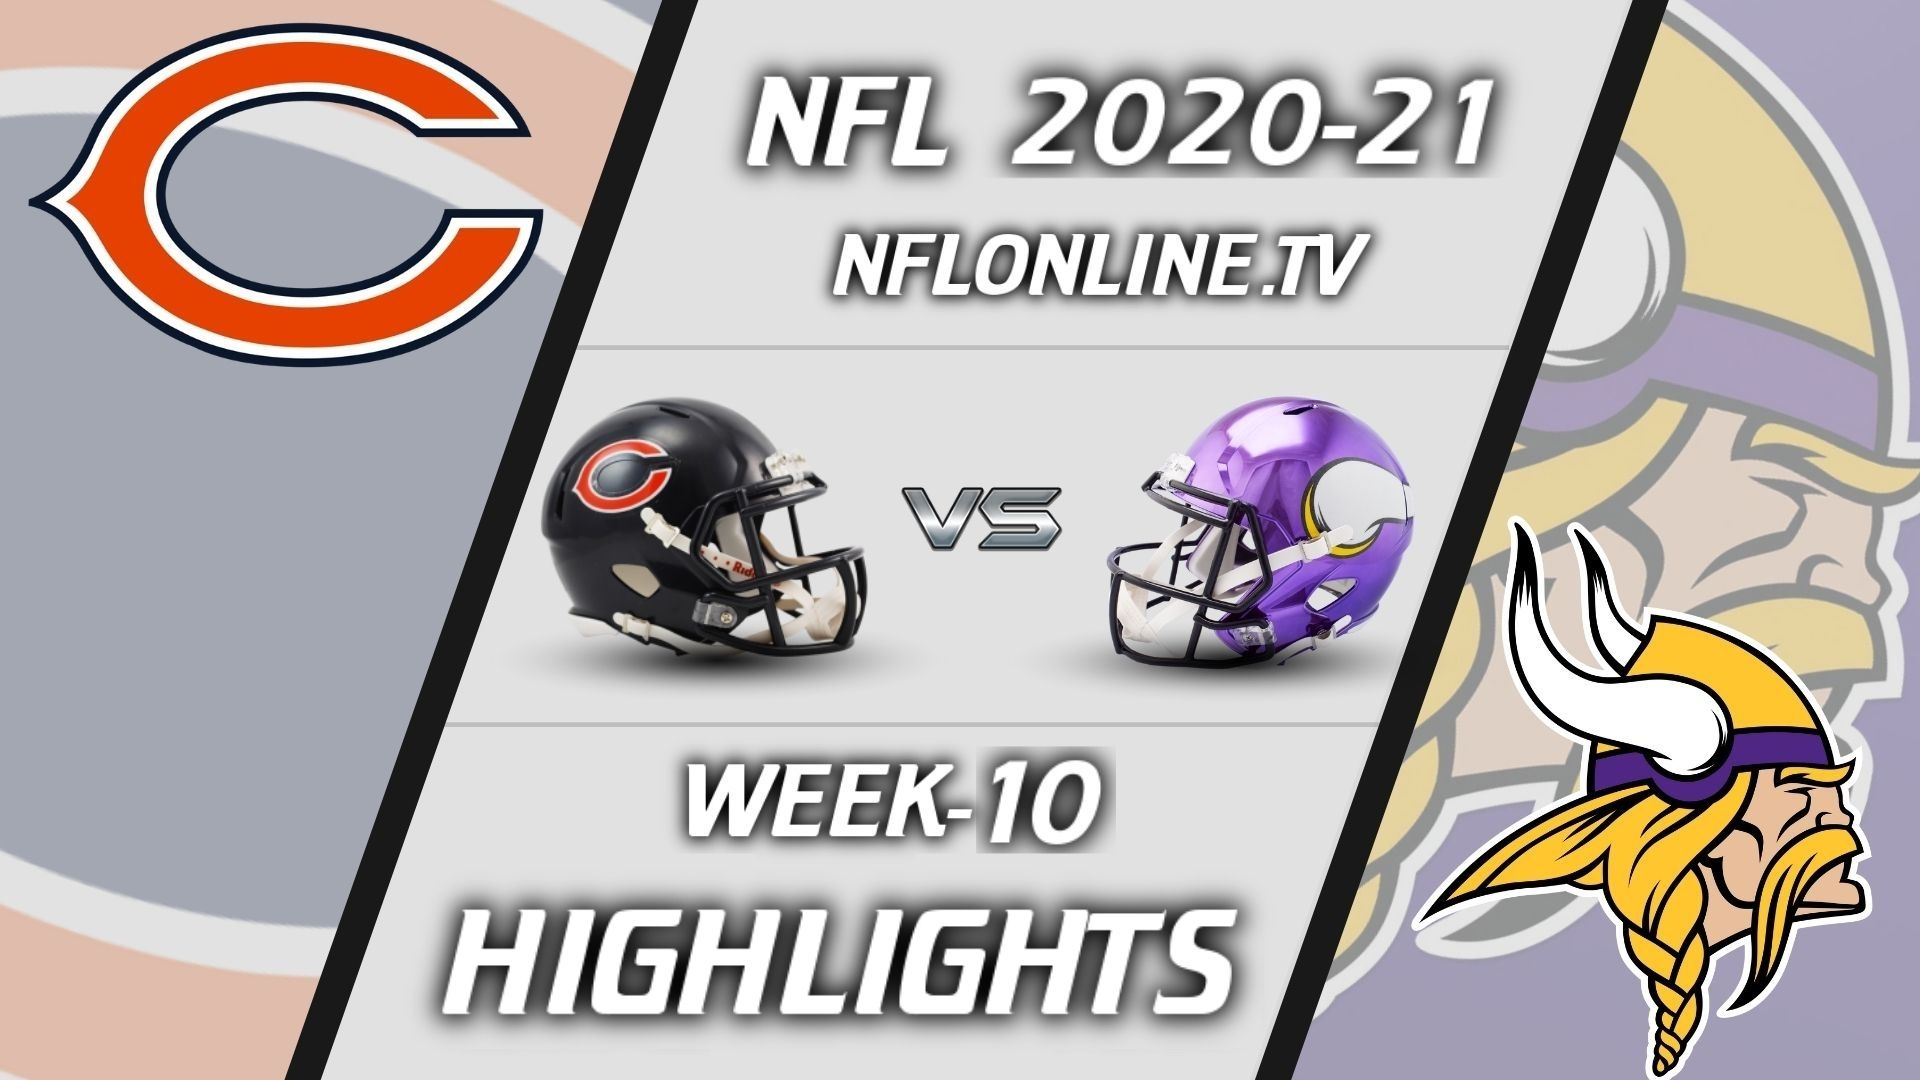 Bears vs Vikings Highlights 2020 WK 10